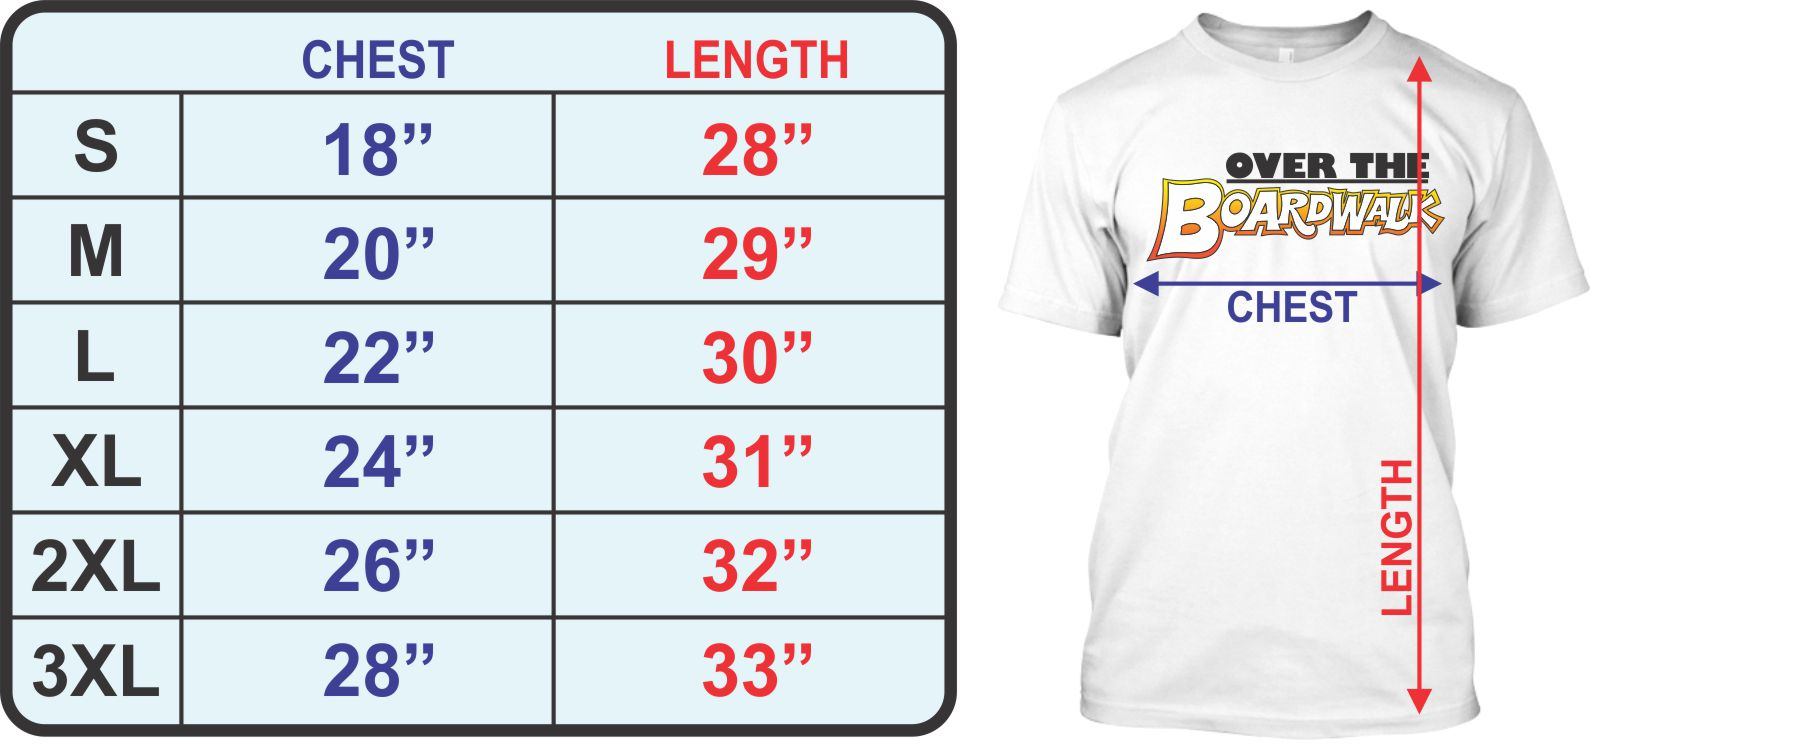 Adult T-shirt Size Chart - Over the Boardwalk Shirts